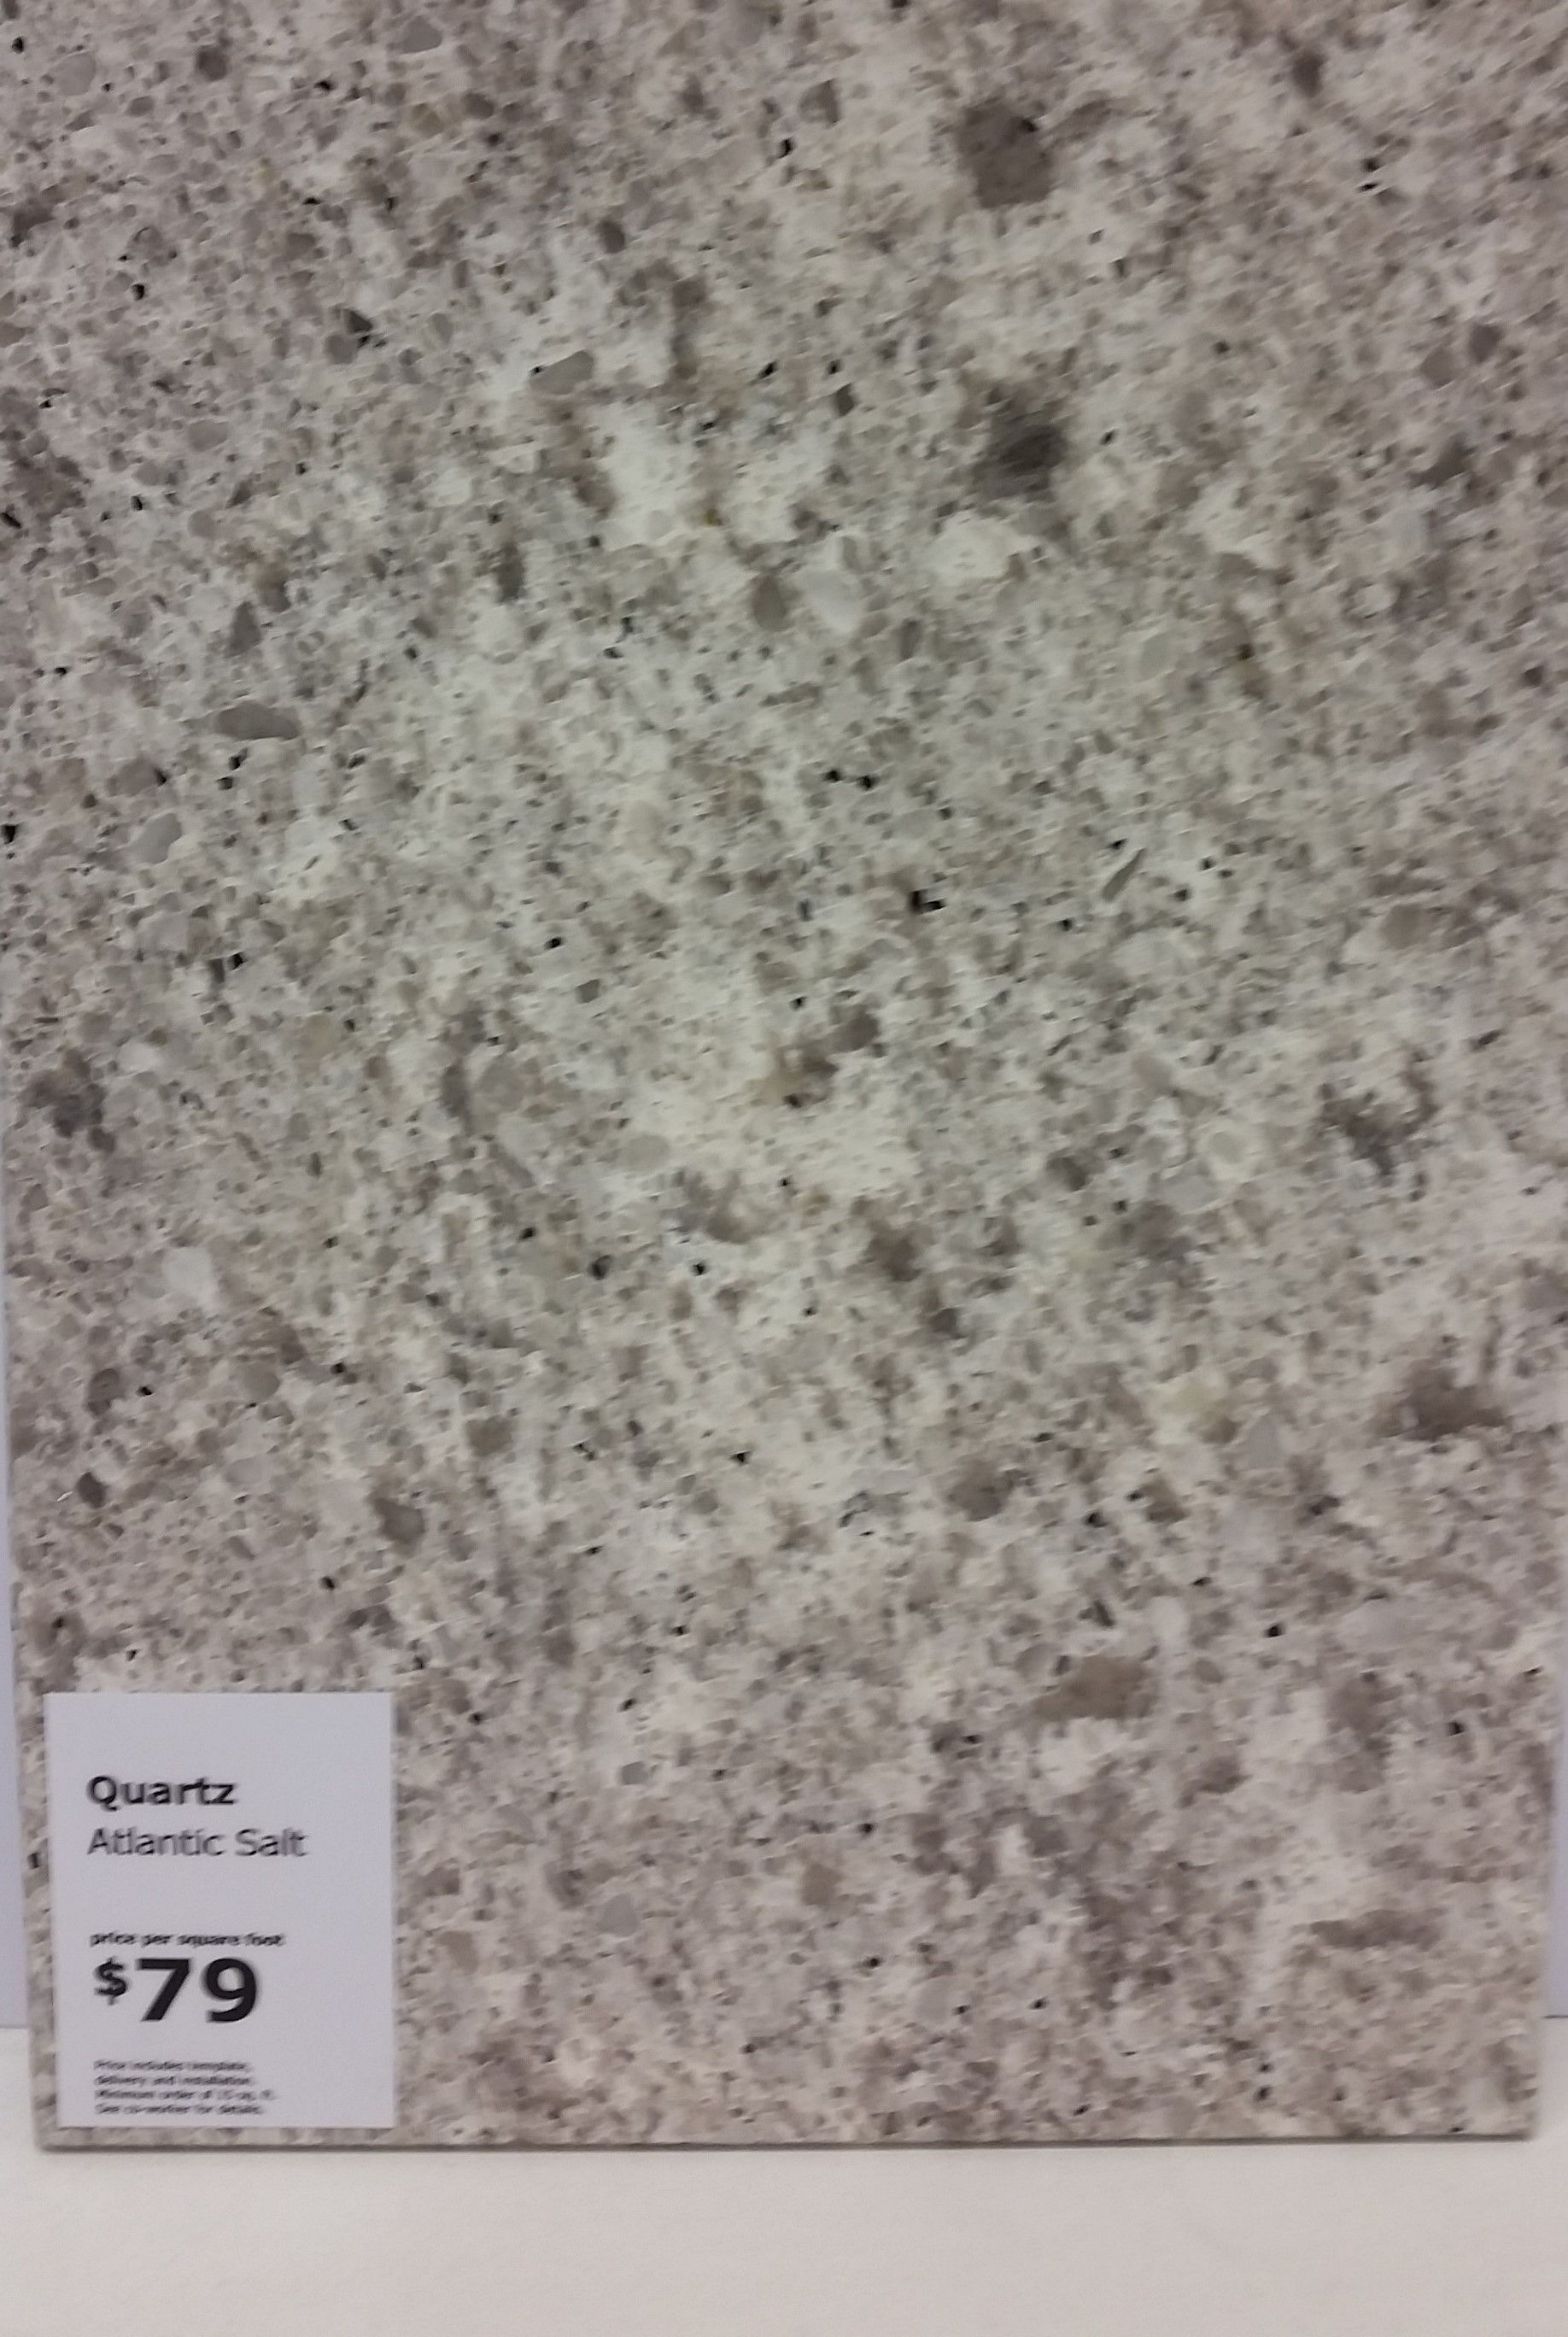 Ikea Atlantic Salt Quartz Countertop Total Cost 79 Per